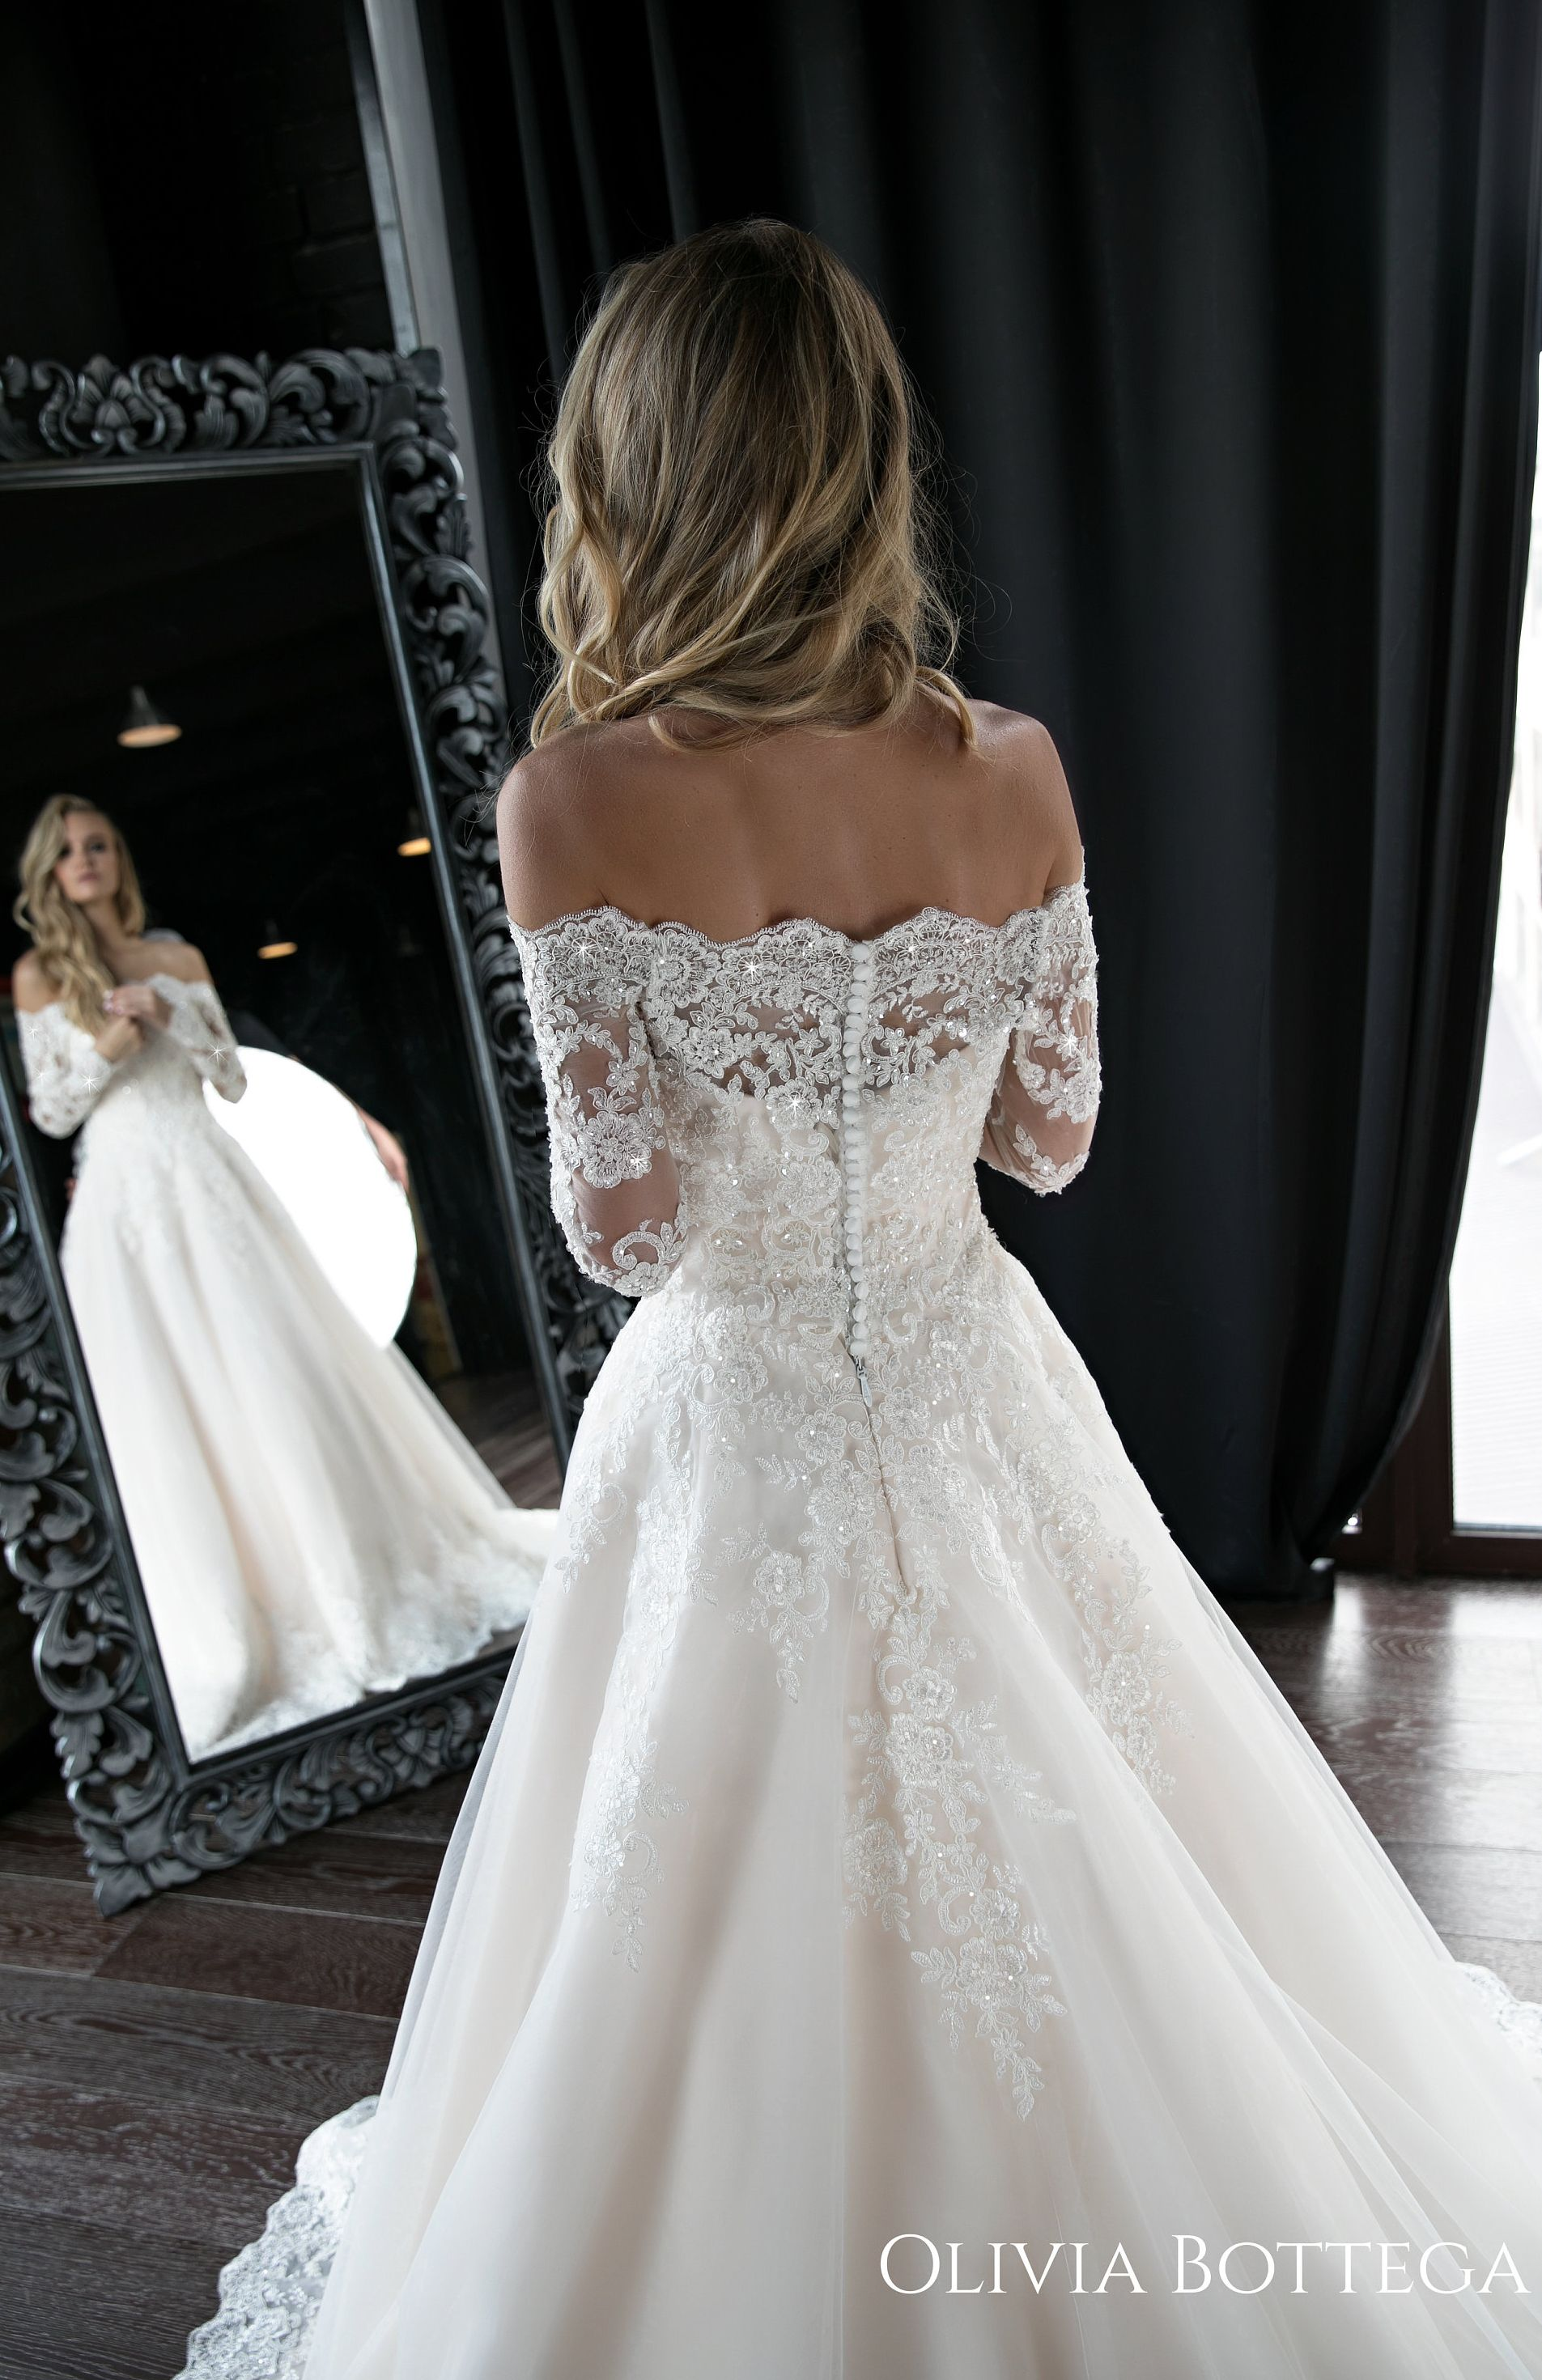 wedding outfit shops near me, OFF 18,Buy